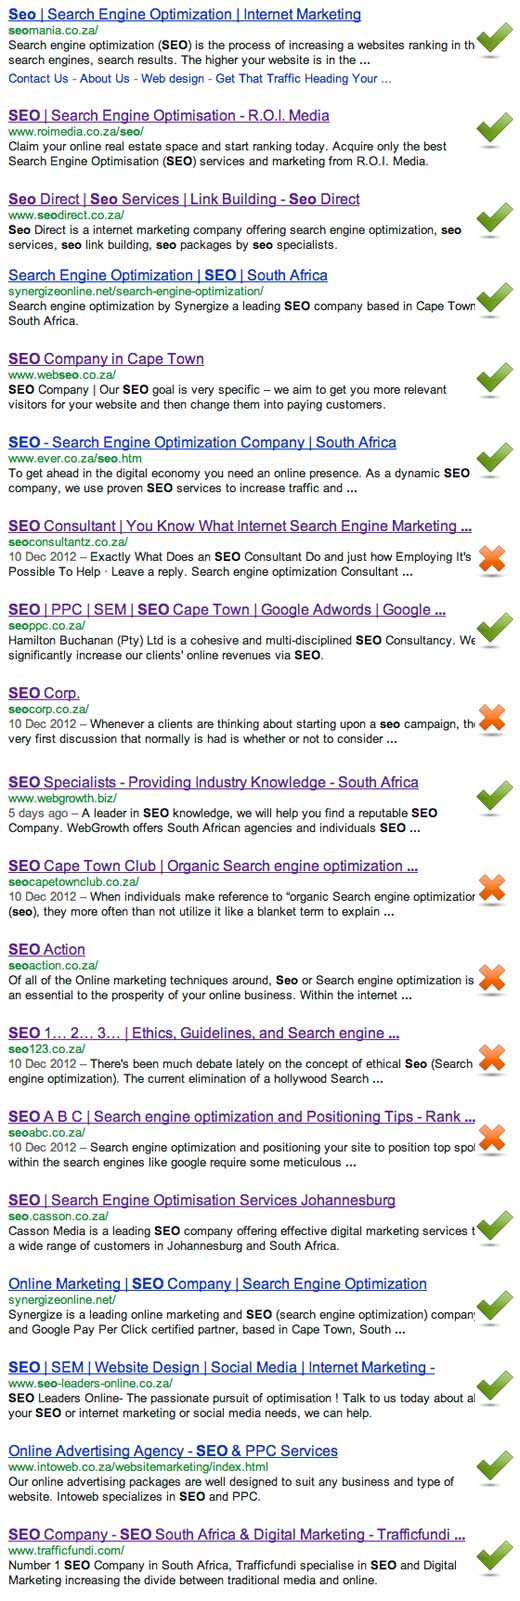 SEO spam in South Africa